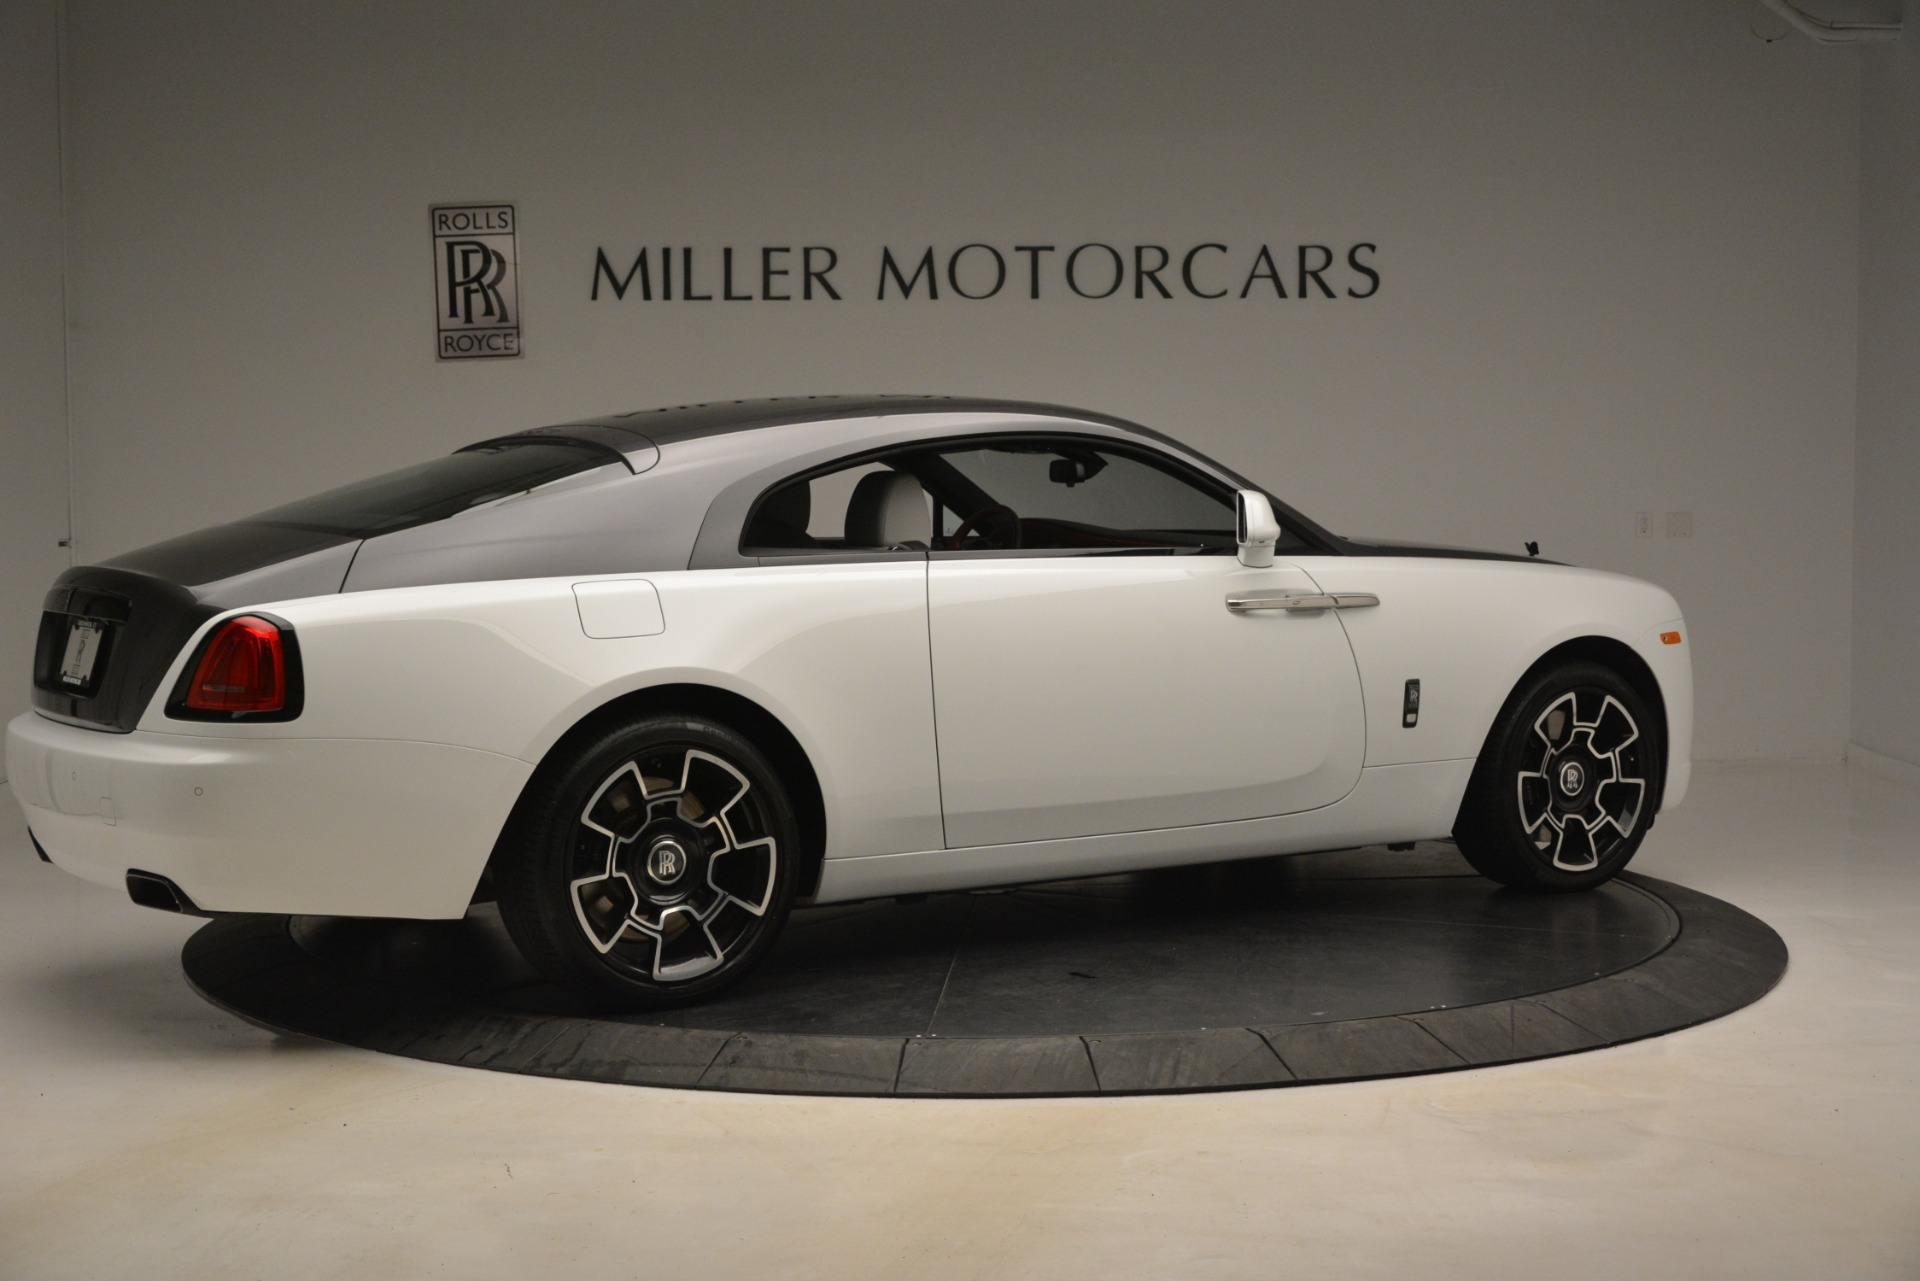 Used 2018 Rolls-Royce Wraith Black Badge Nebula Collection For Sale In Westport, CT 2491_p8